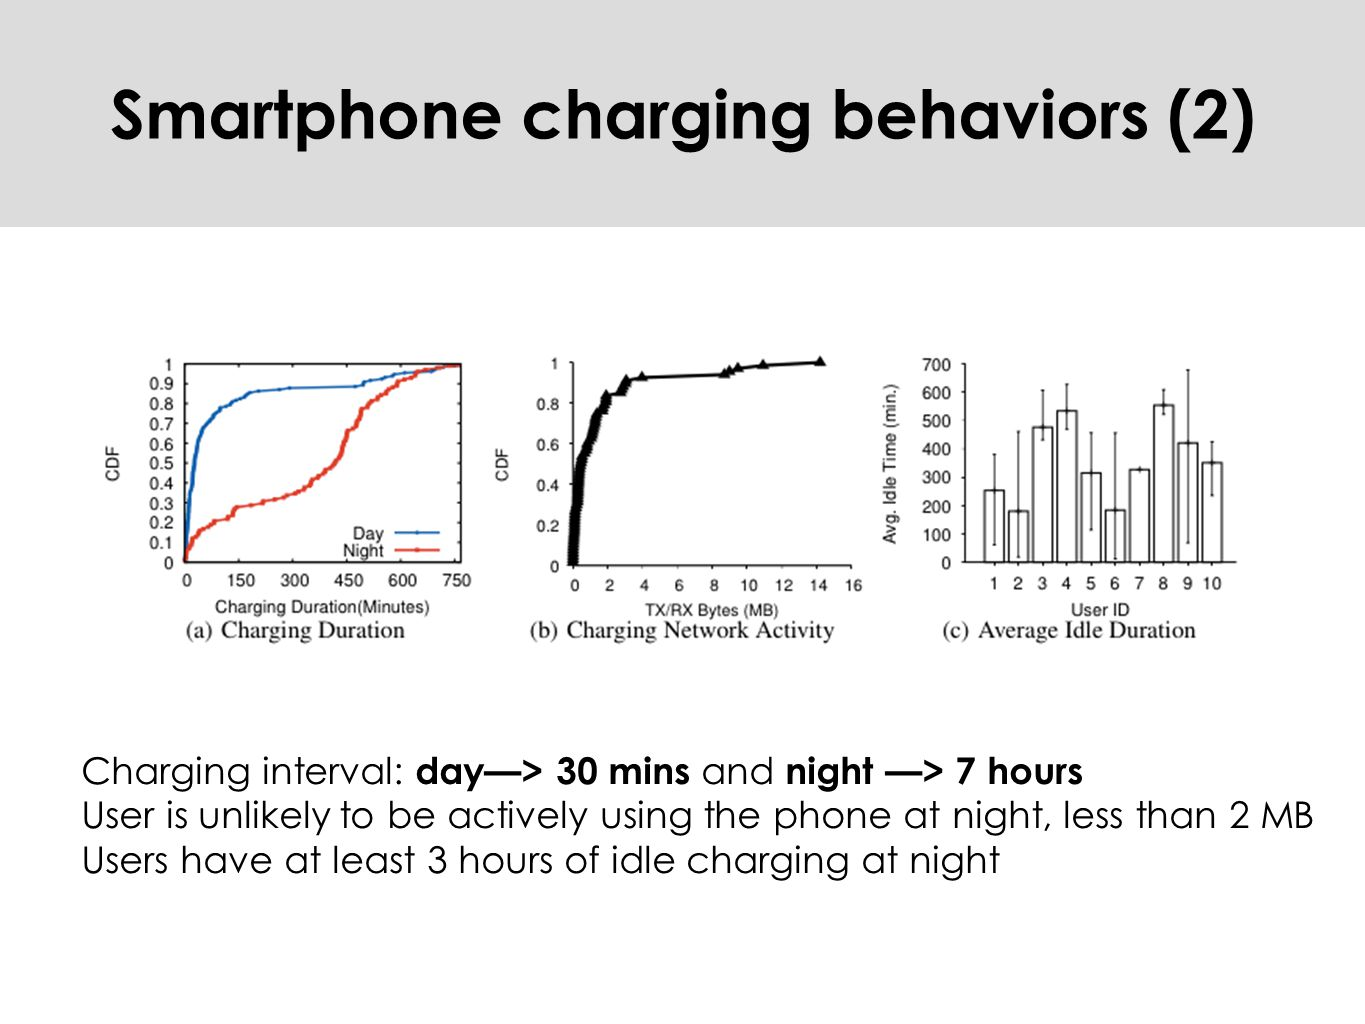 Charging interval: day—> 30 mins and night —> 7 hours User is unlikely to be actively using the phone at night, less than 2 MB Users have at least 3 hours of idle charging at night Smartphone charging behaviors (2)